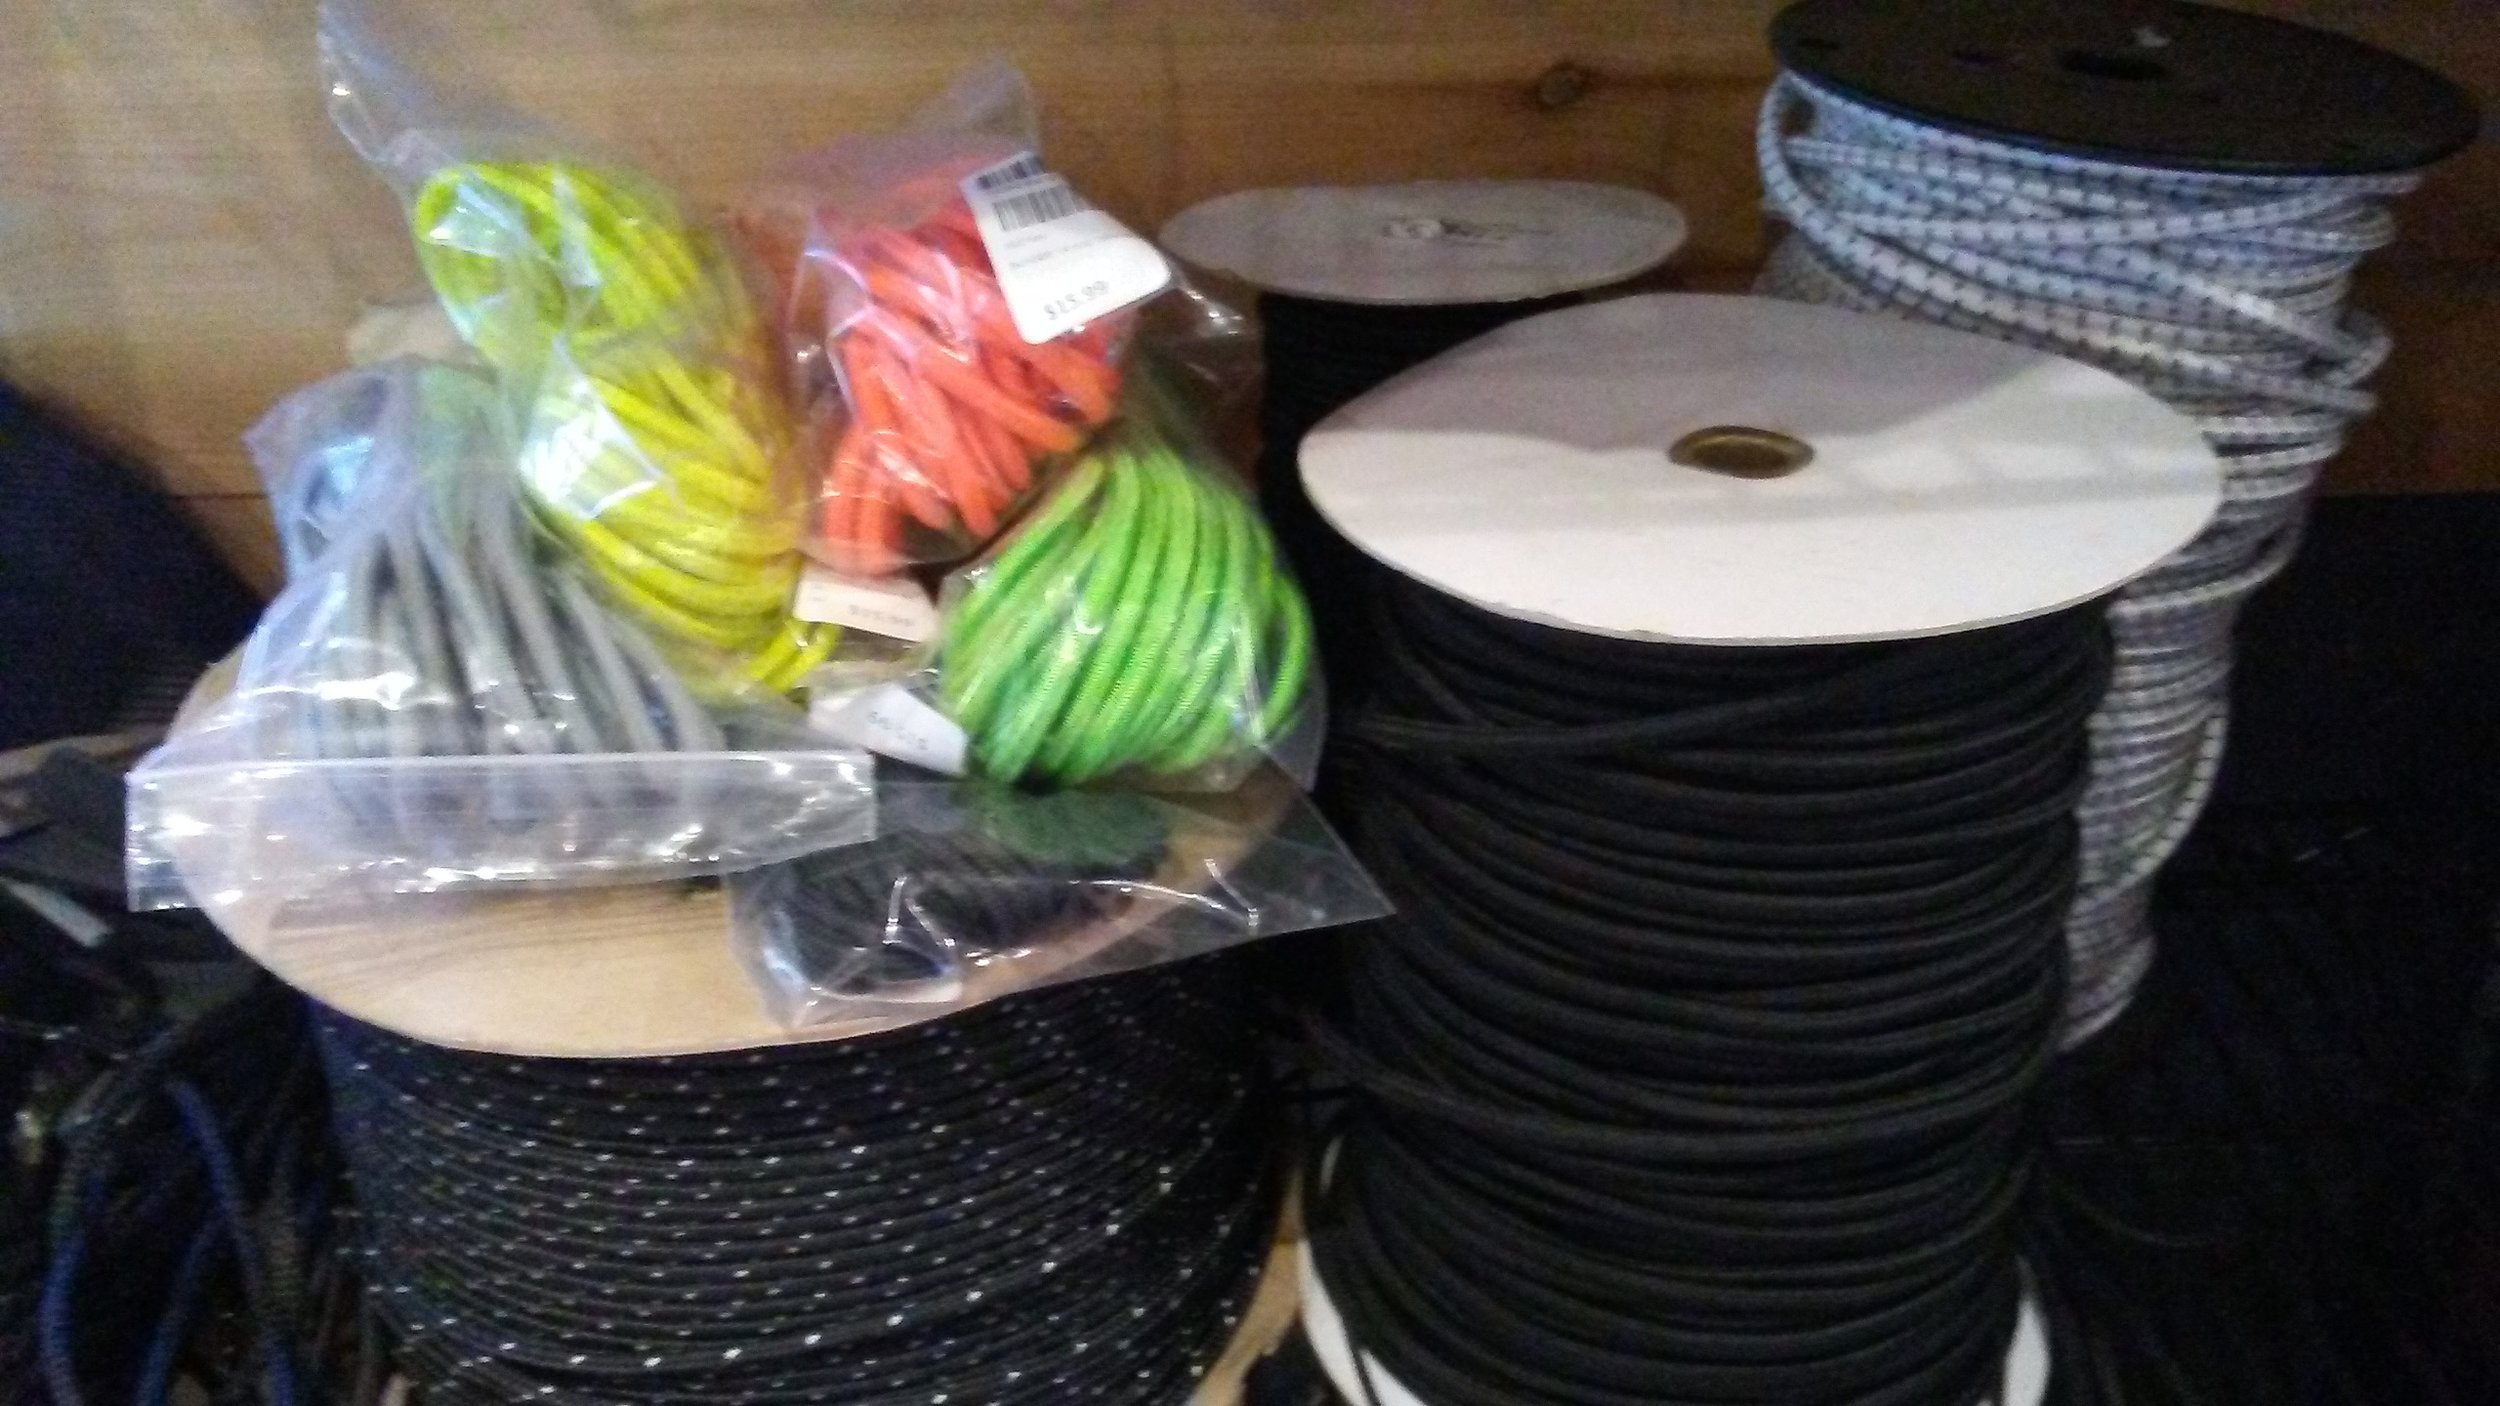 Deckline and Bungee: In various thicknesses. Bungee in various colors. Reflective deckline.